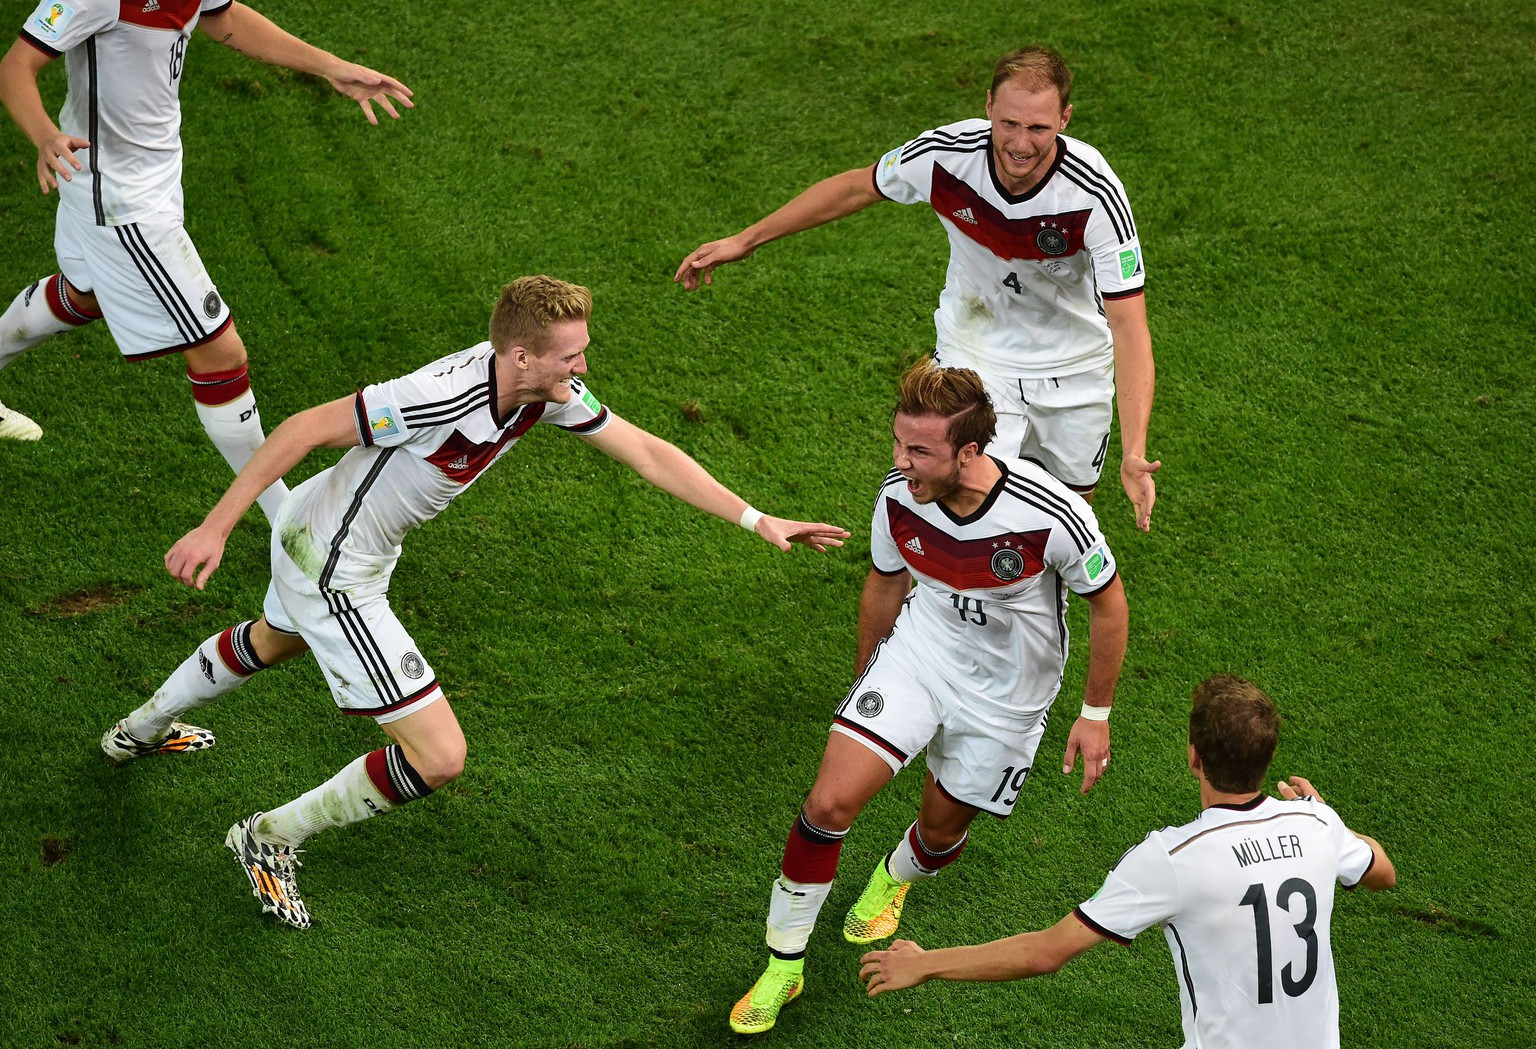 Germany's forward Mario Goetze (C) celebrates with (L/R) Germany's forward Andre Schuerrle, Germany's defender Benedikt Hoewedes and Germany's forward Thomas Mueller after scoring during extra-time in the final football match between Germany and Argentina for the FIFA World Cup at The Maracana Stadium in Rio de Janeiro on July 13, 2014. AFP PHOTO / FRANCOIS XAVIER MARIT/POOL